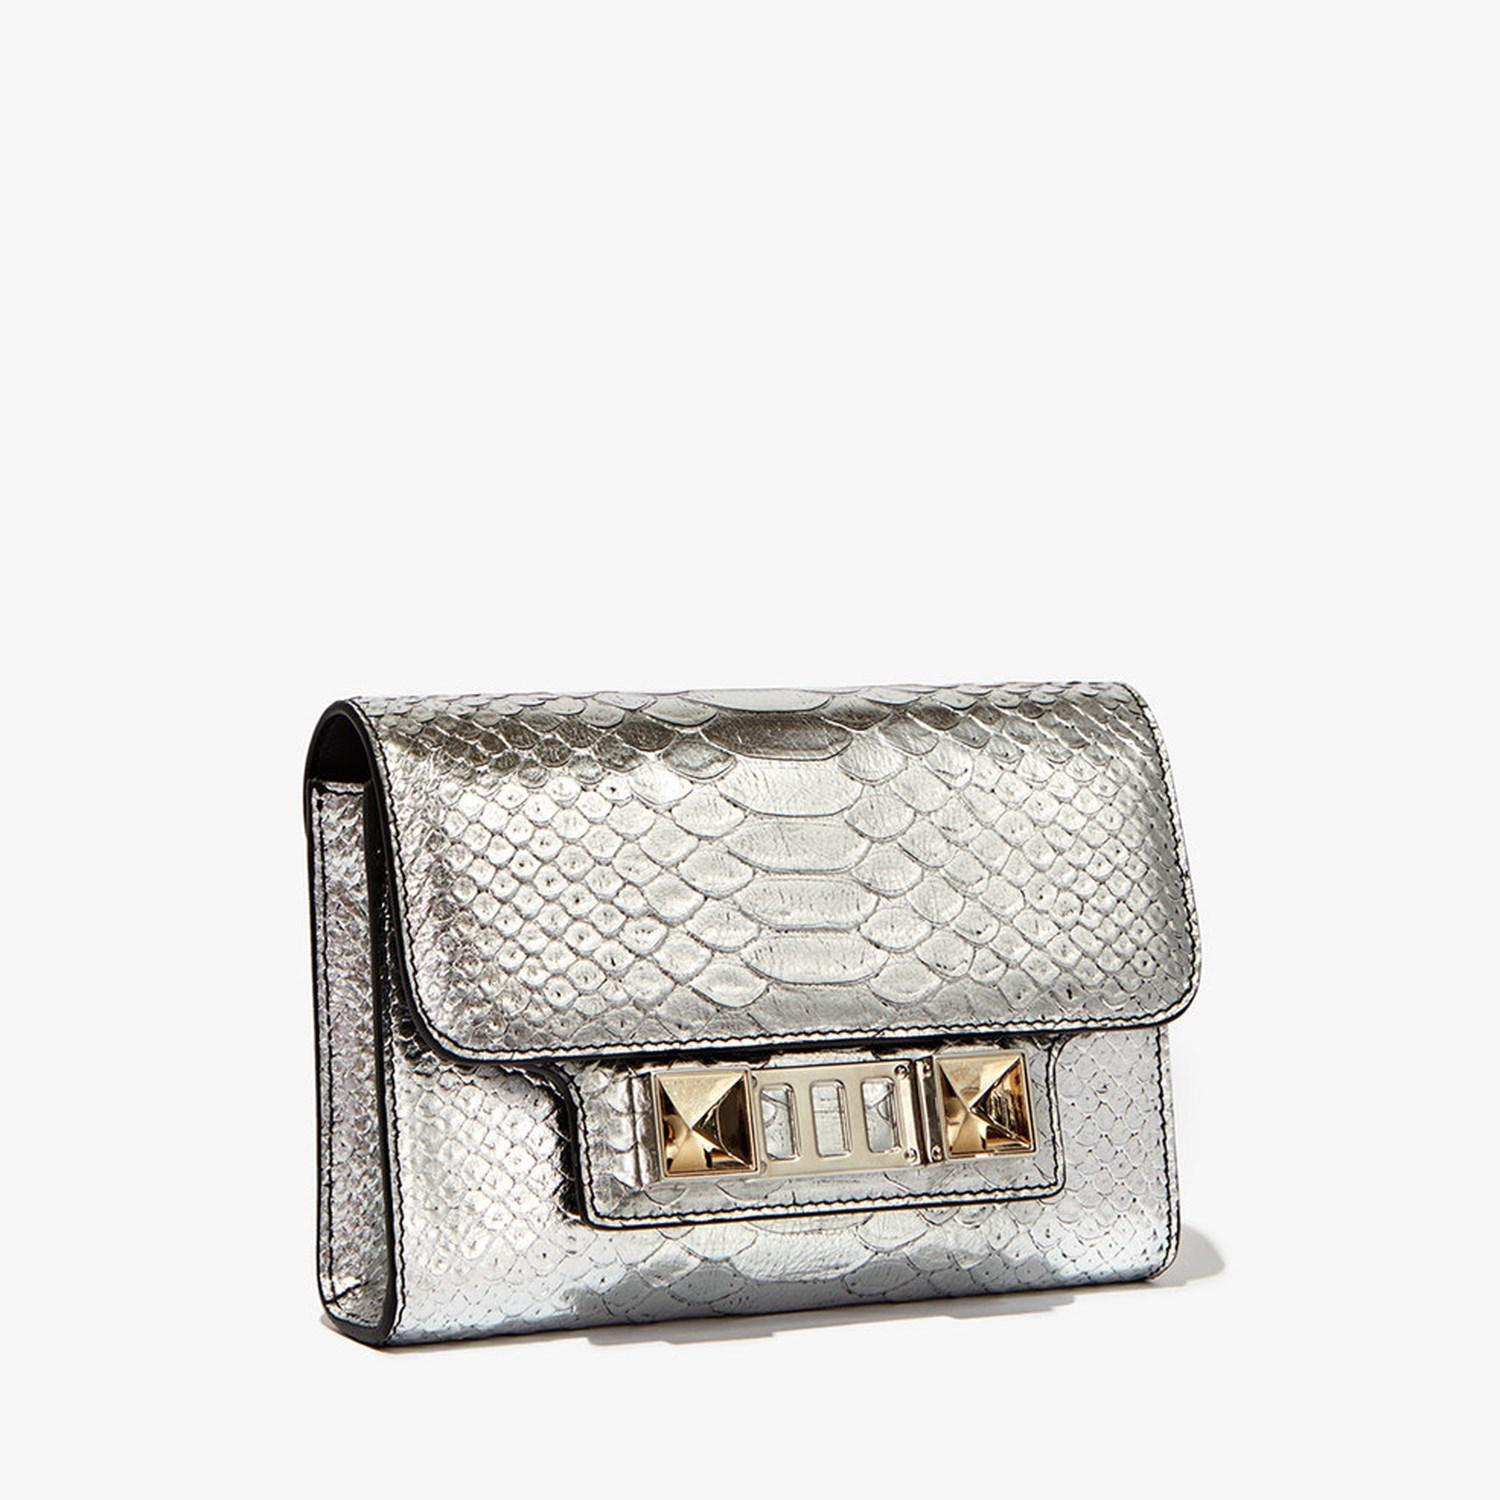 Ps11 Wallet with Strap in Silver Metallic Linosa Leather Proenza Schouler qWxiPjFQT